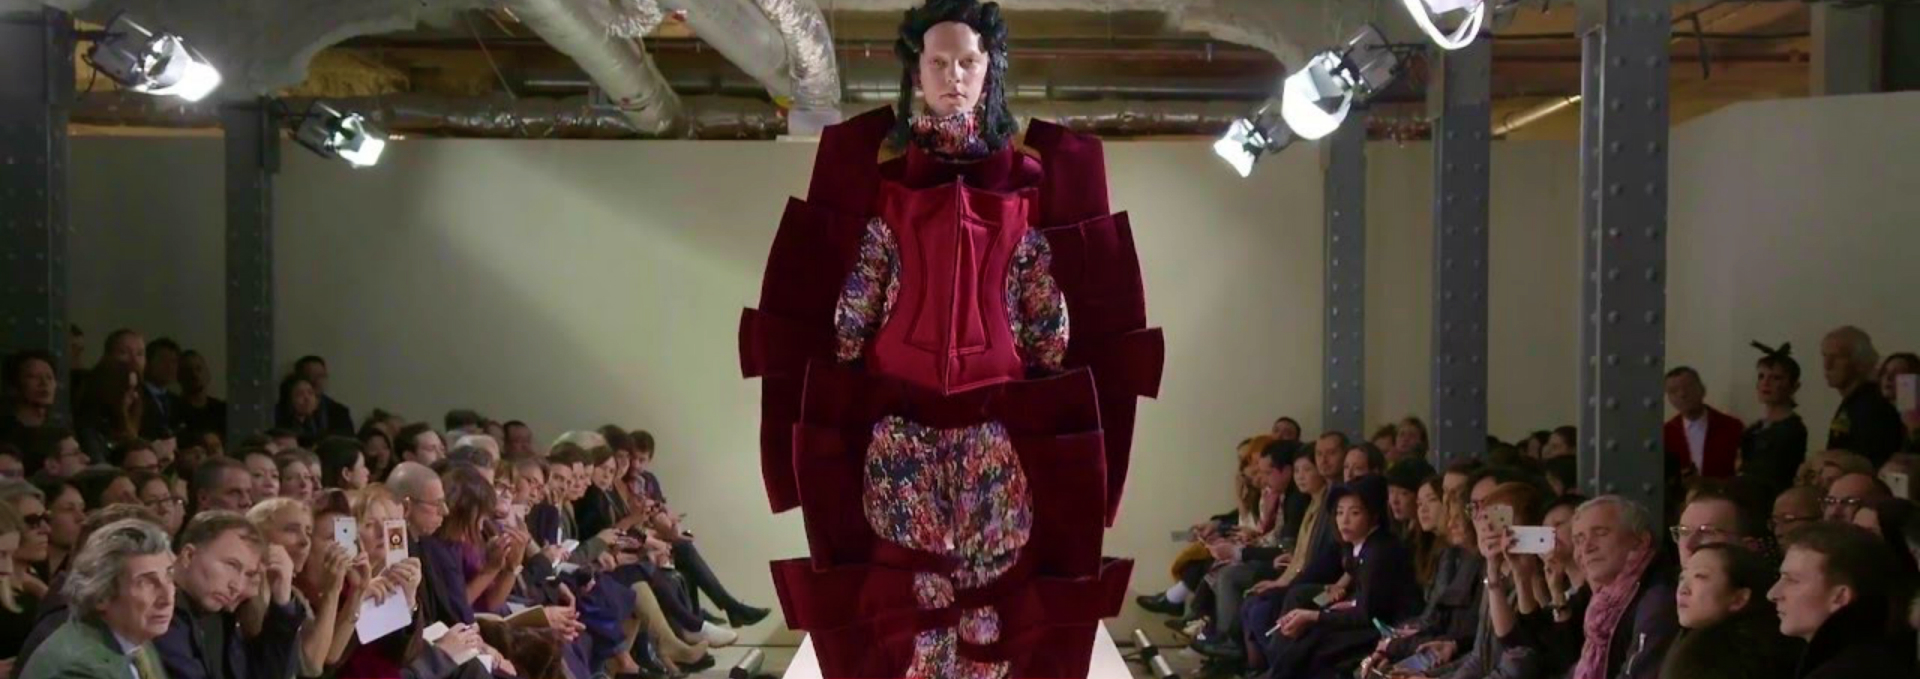 Take a Peek at Comme des Garços' Wildest Looks - Fashion Trends 2017 - Paris Fashion Week 2017 - Fashion Design News ➤ Discover the season's newest design news and inspiration ideas. Visit Daily Design News and subscribe our newsletter! #dailydesignnews #designnews #FashionTrends2017 #ParisFashionWeek2017 #FashionDesignNews #FashionTrends #ParisFashionWeek